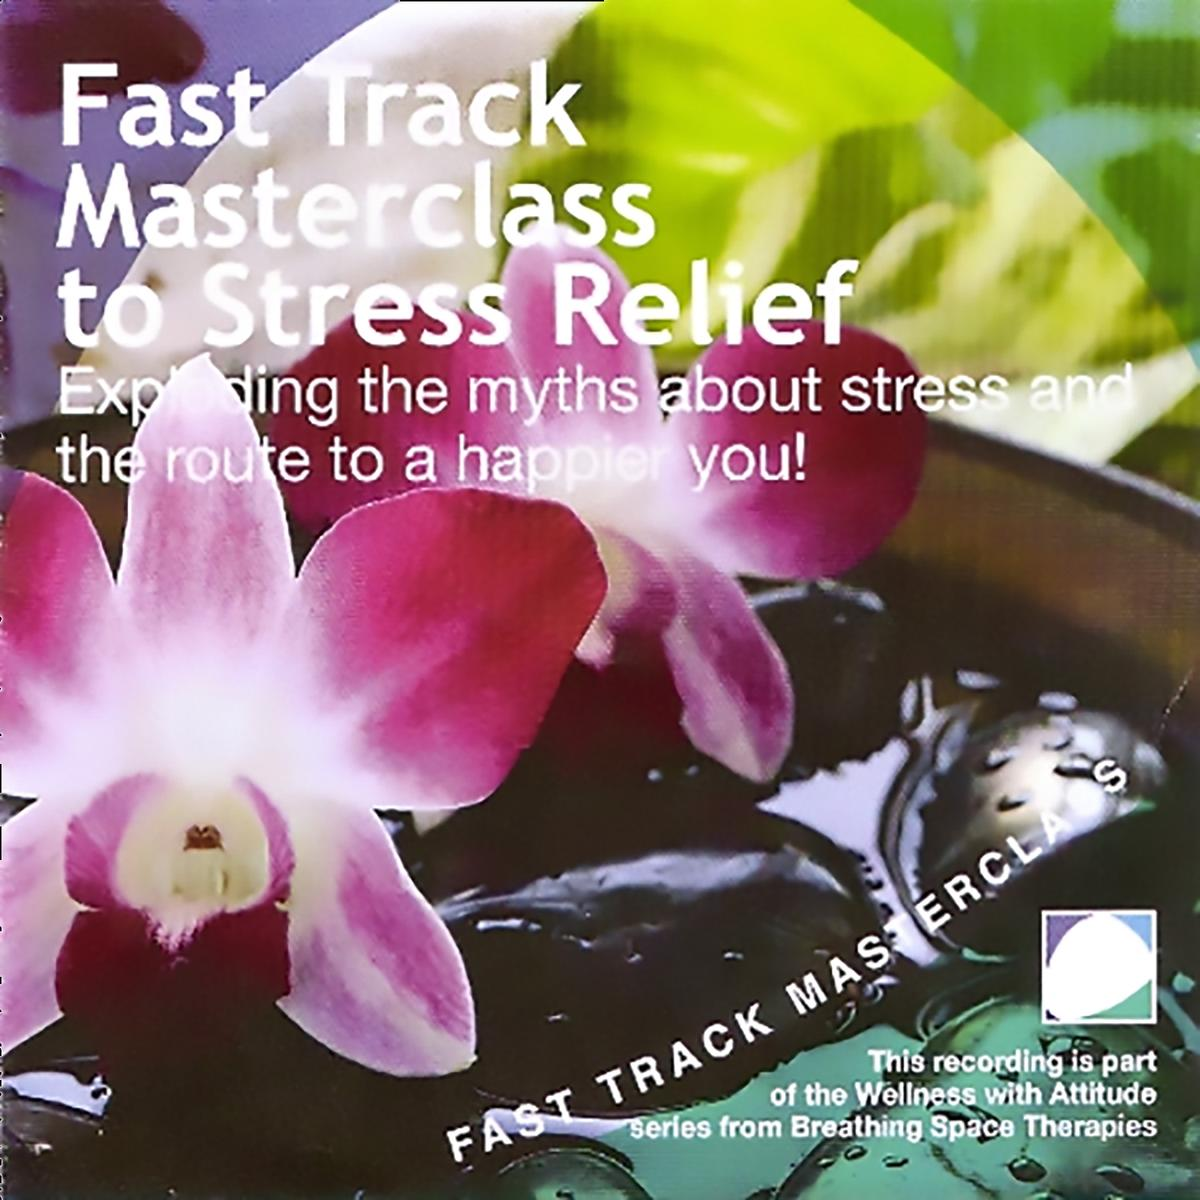 Fast track masterclass to stress relief - Audiobook